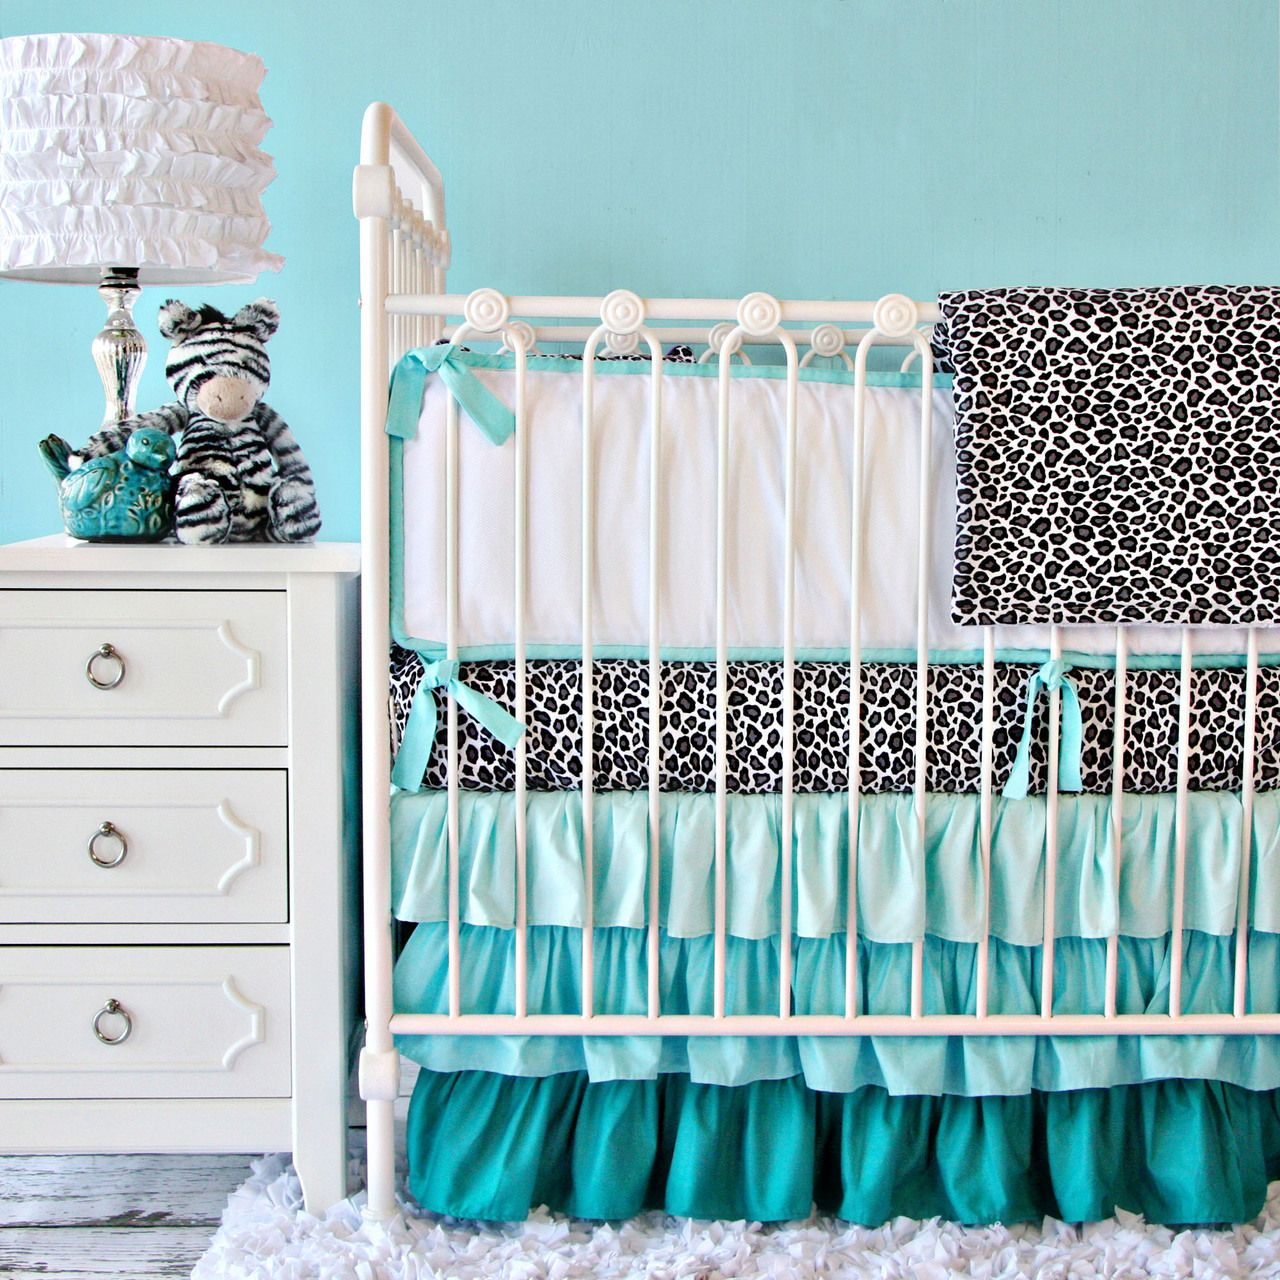 Your Y Aqua Leopard Crib Bedding Set Here Make Nursery Unforgettable With The Stylishly Over Top Ruffle